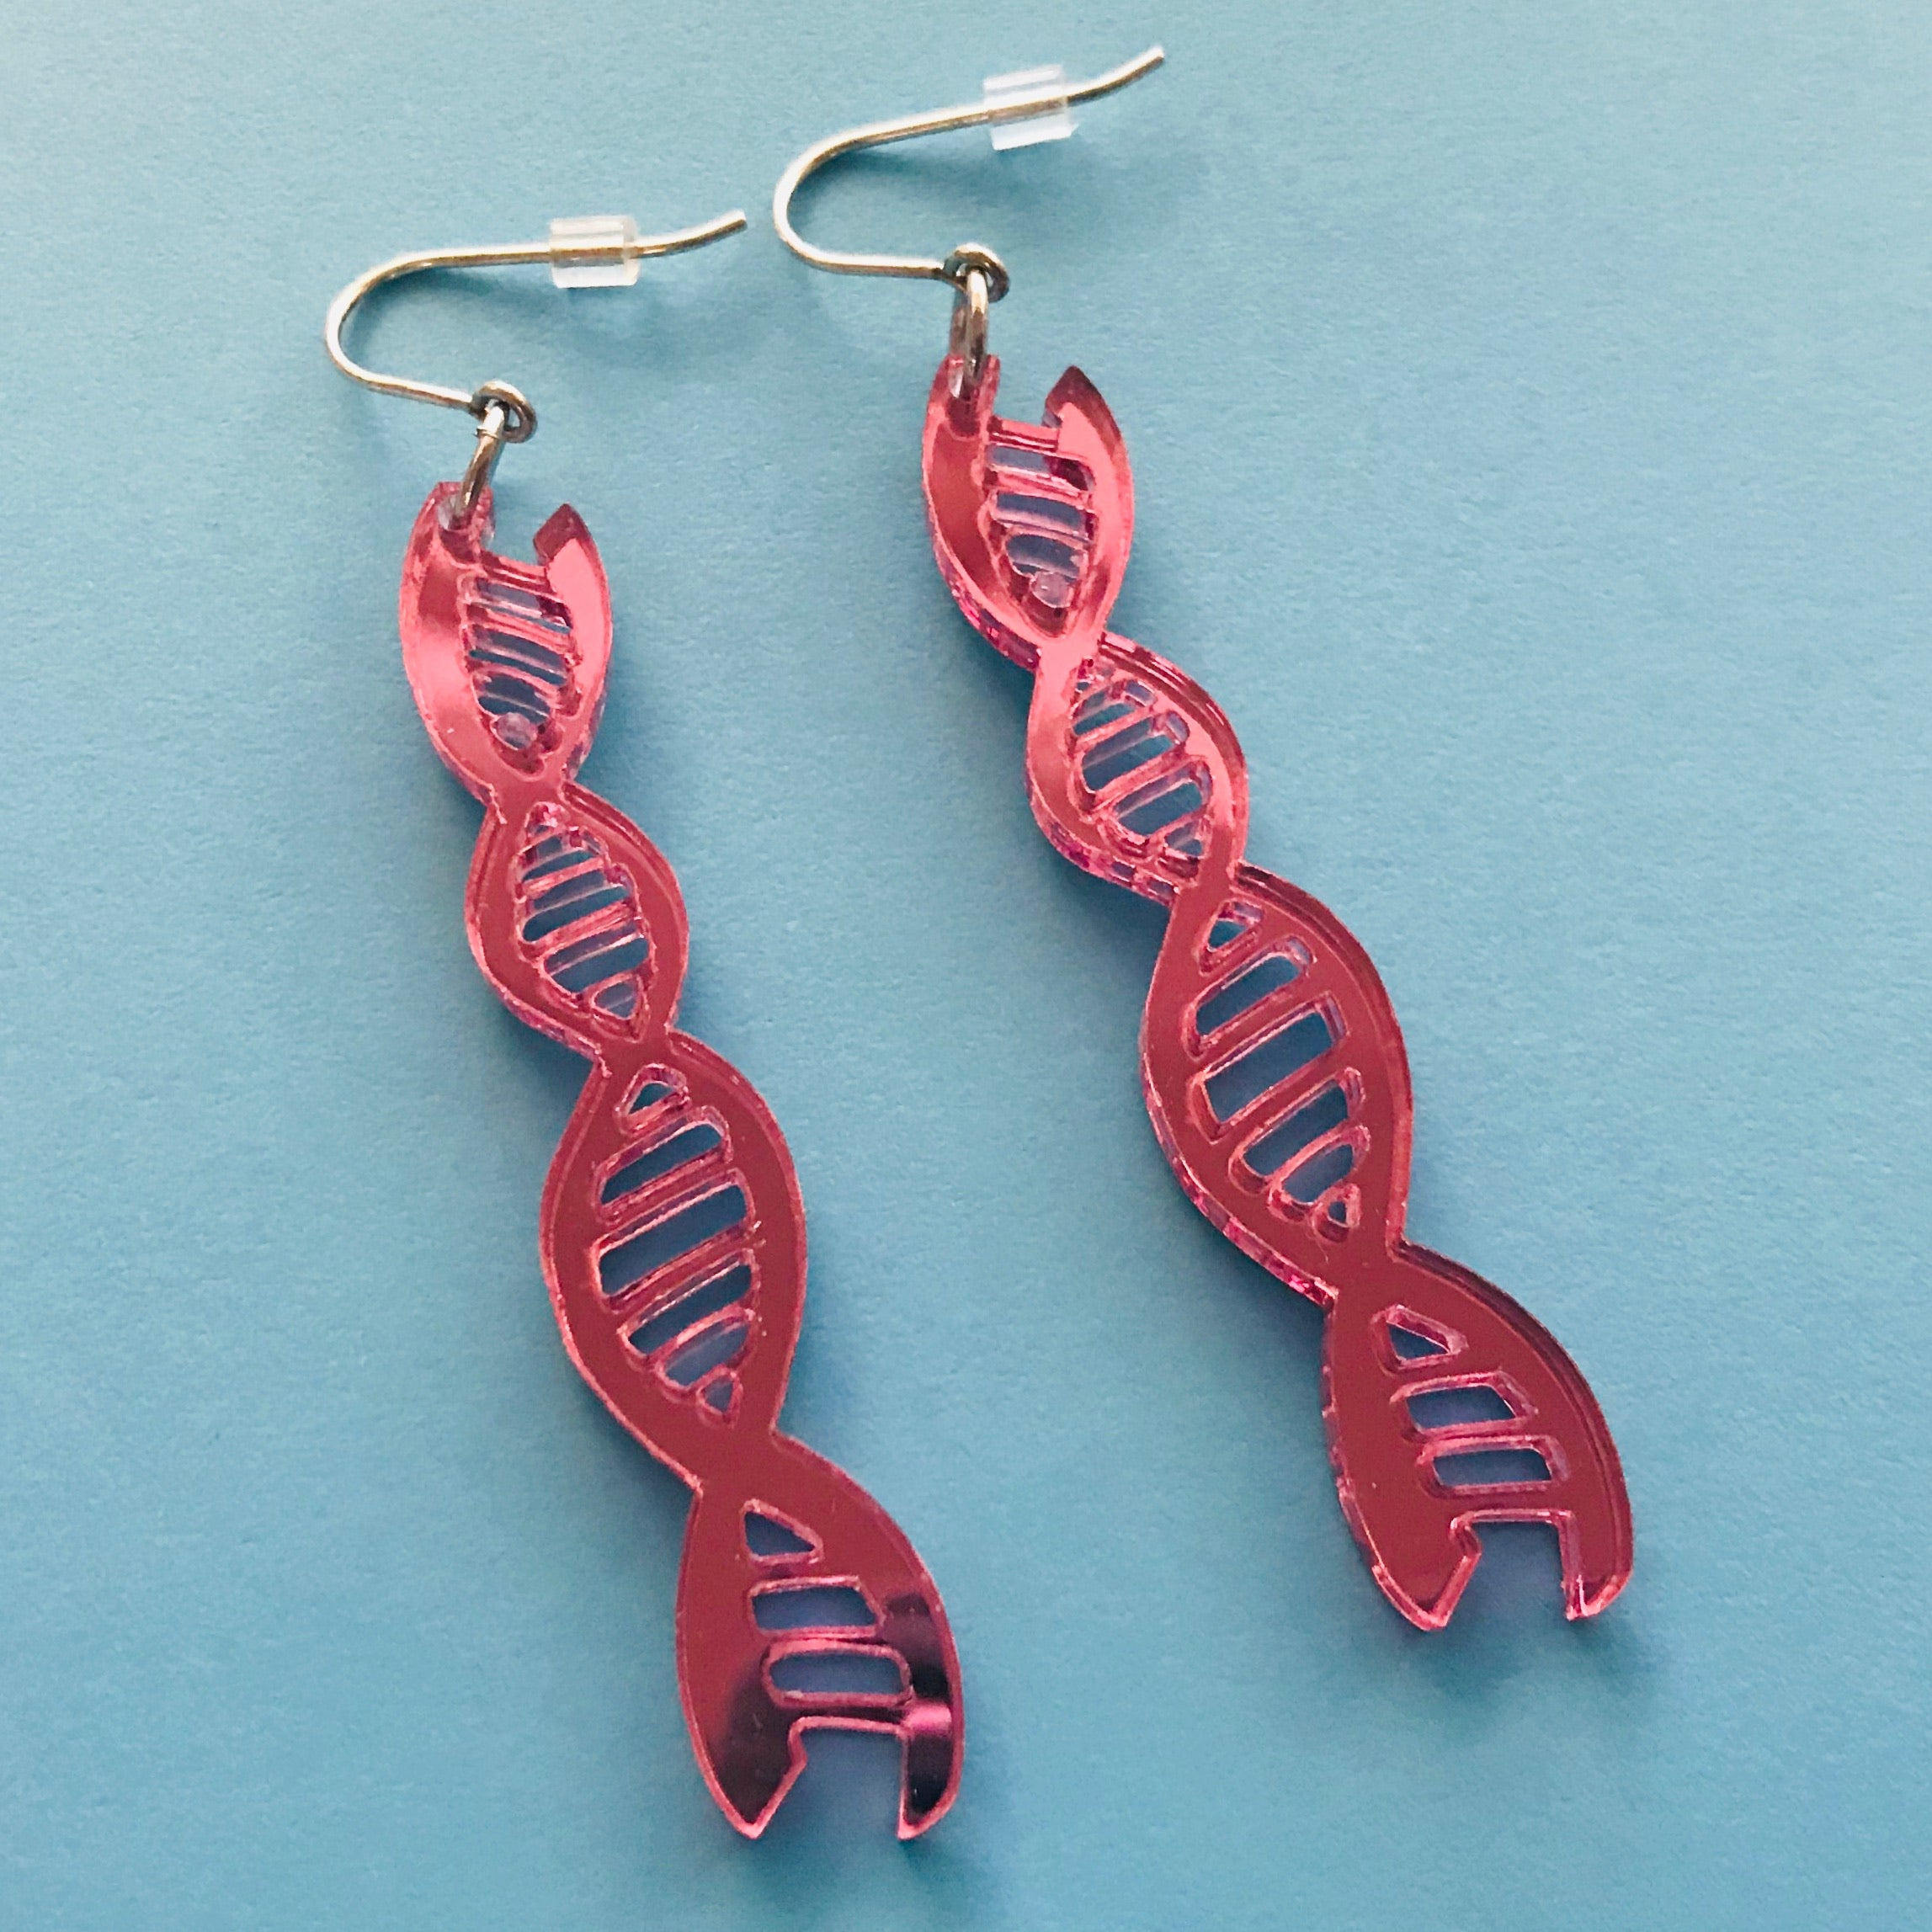 DNA Double Helix Fundraising Earrings